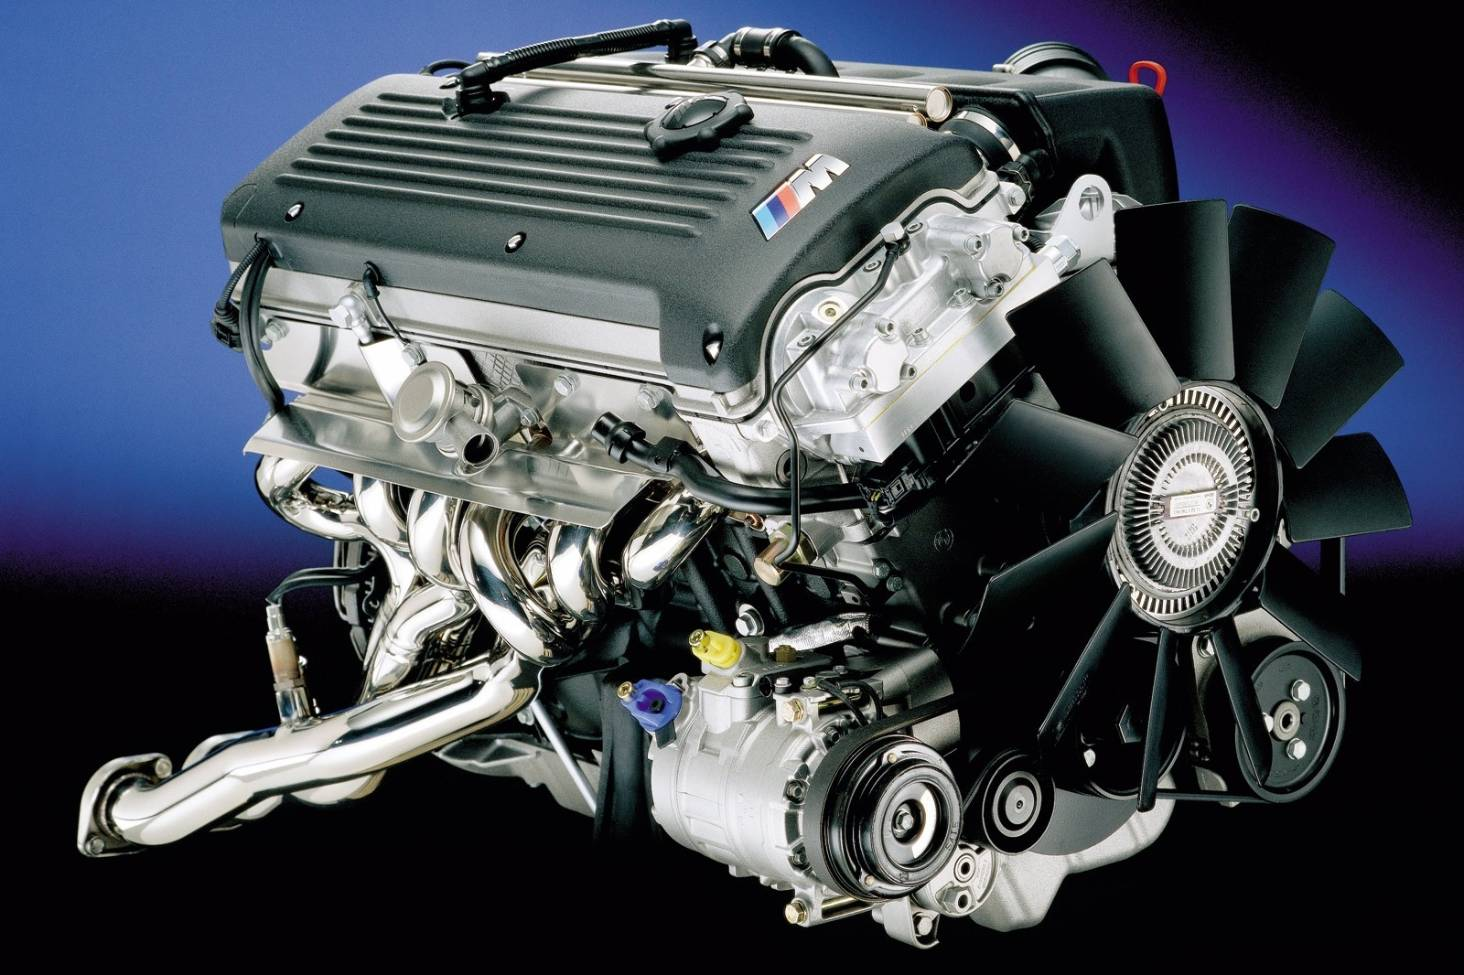 Great engines that put six cylinders in a straight line